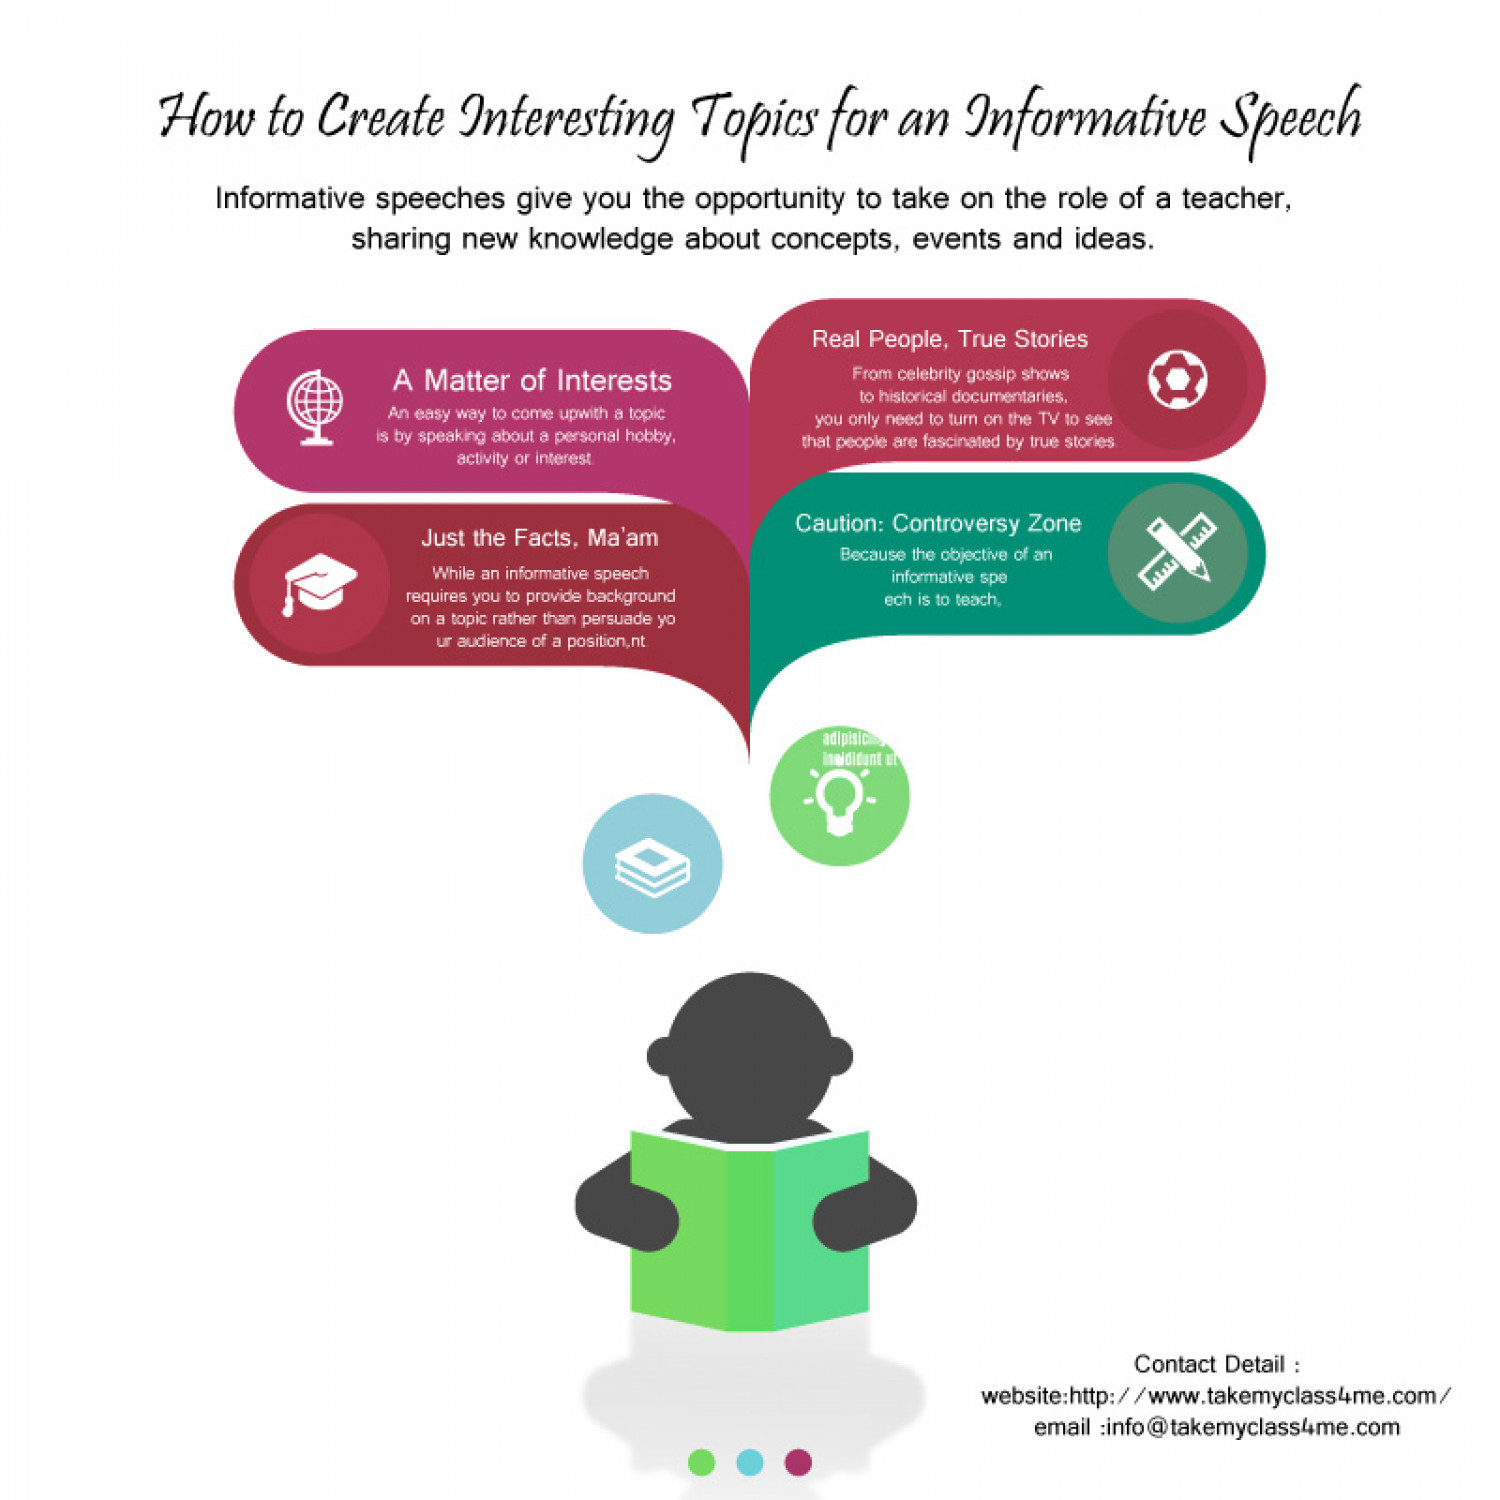 how to create interesting topics for an informative speech ly how to create interesting topics for an informative speech infographic